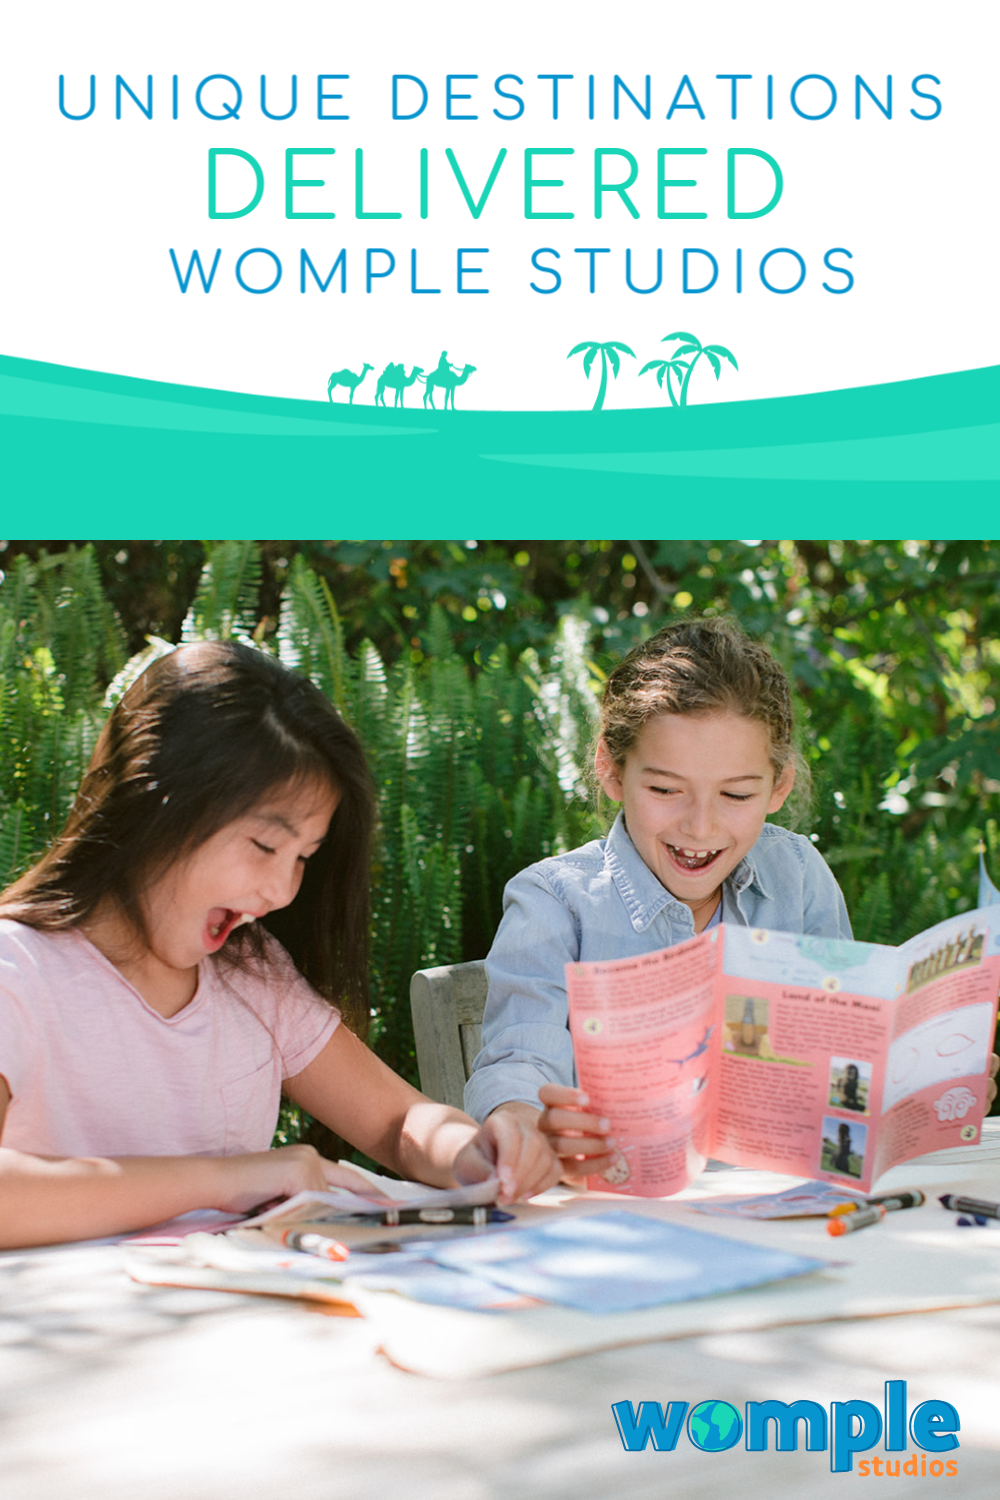 WompleMail by Womple Studios. Learn about Unique Destinations 2x a Month!!! TWO DELIVERIES EACH MONTH!! #WompleMail #WompleStudios